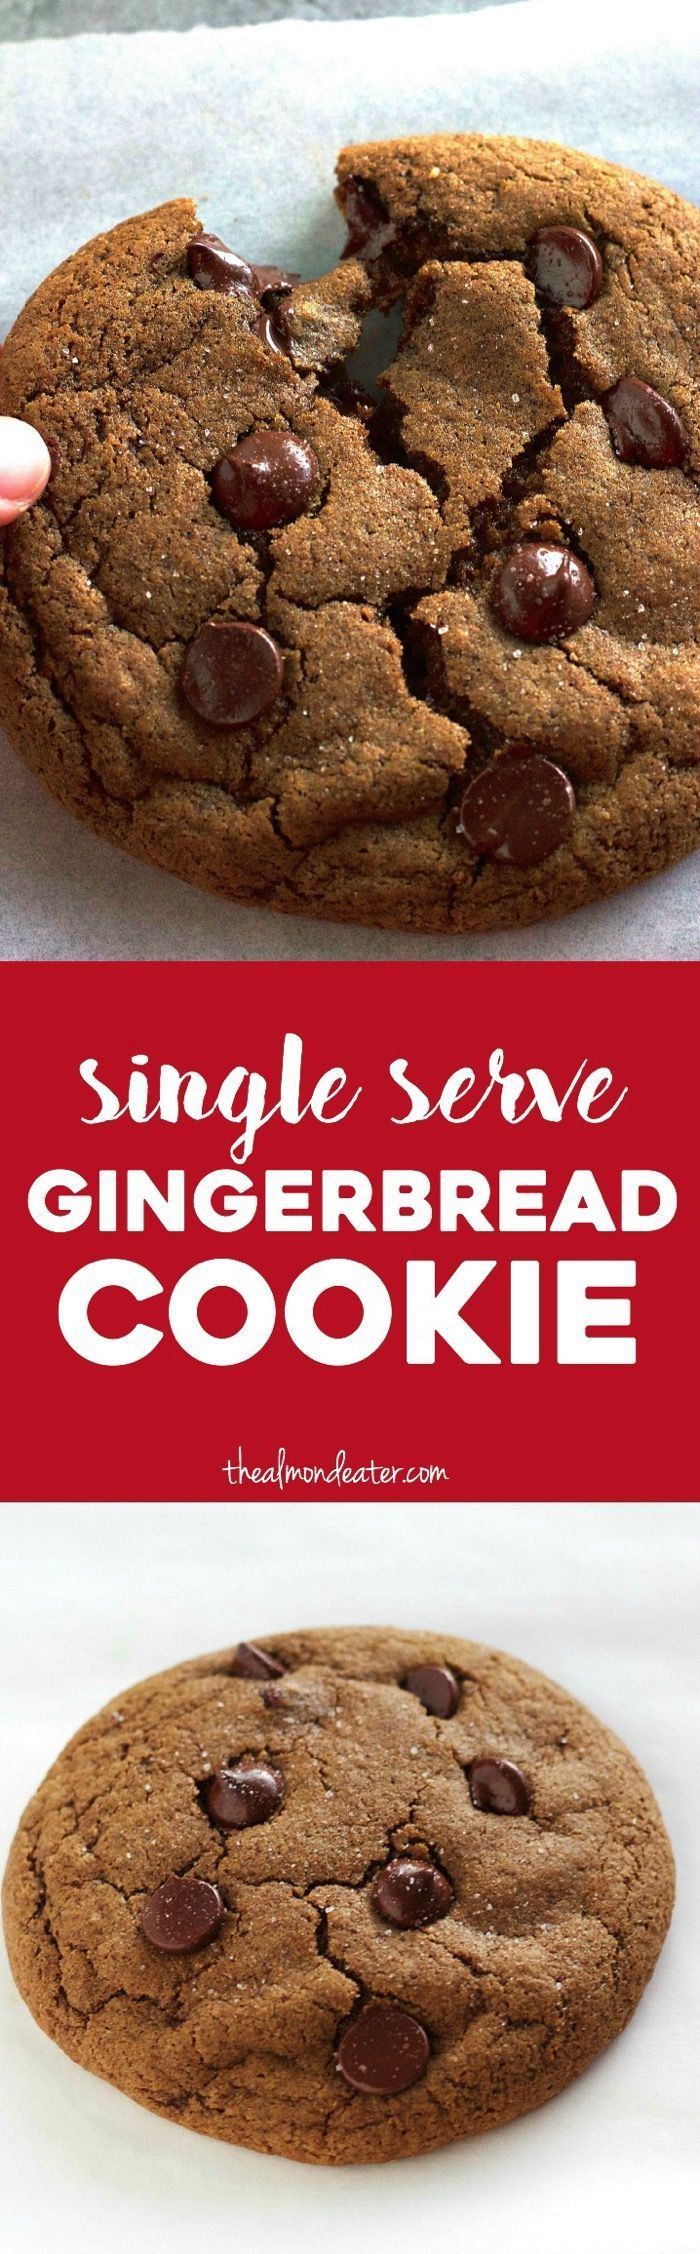 Soft, chewy SINGLE SERVE gingerbread cookie. Just 10 minutes to make and 1 bowl!